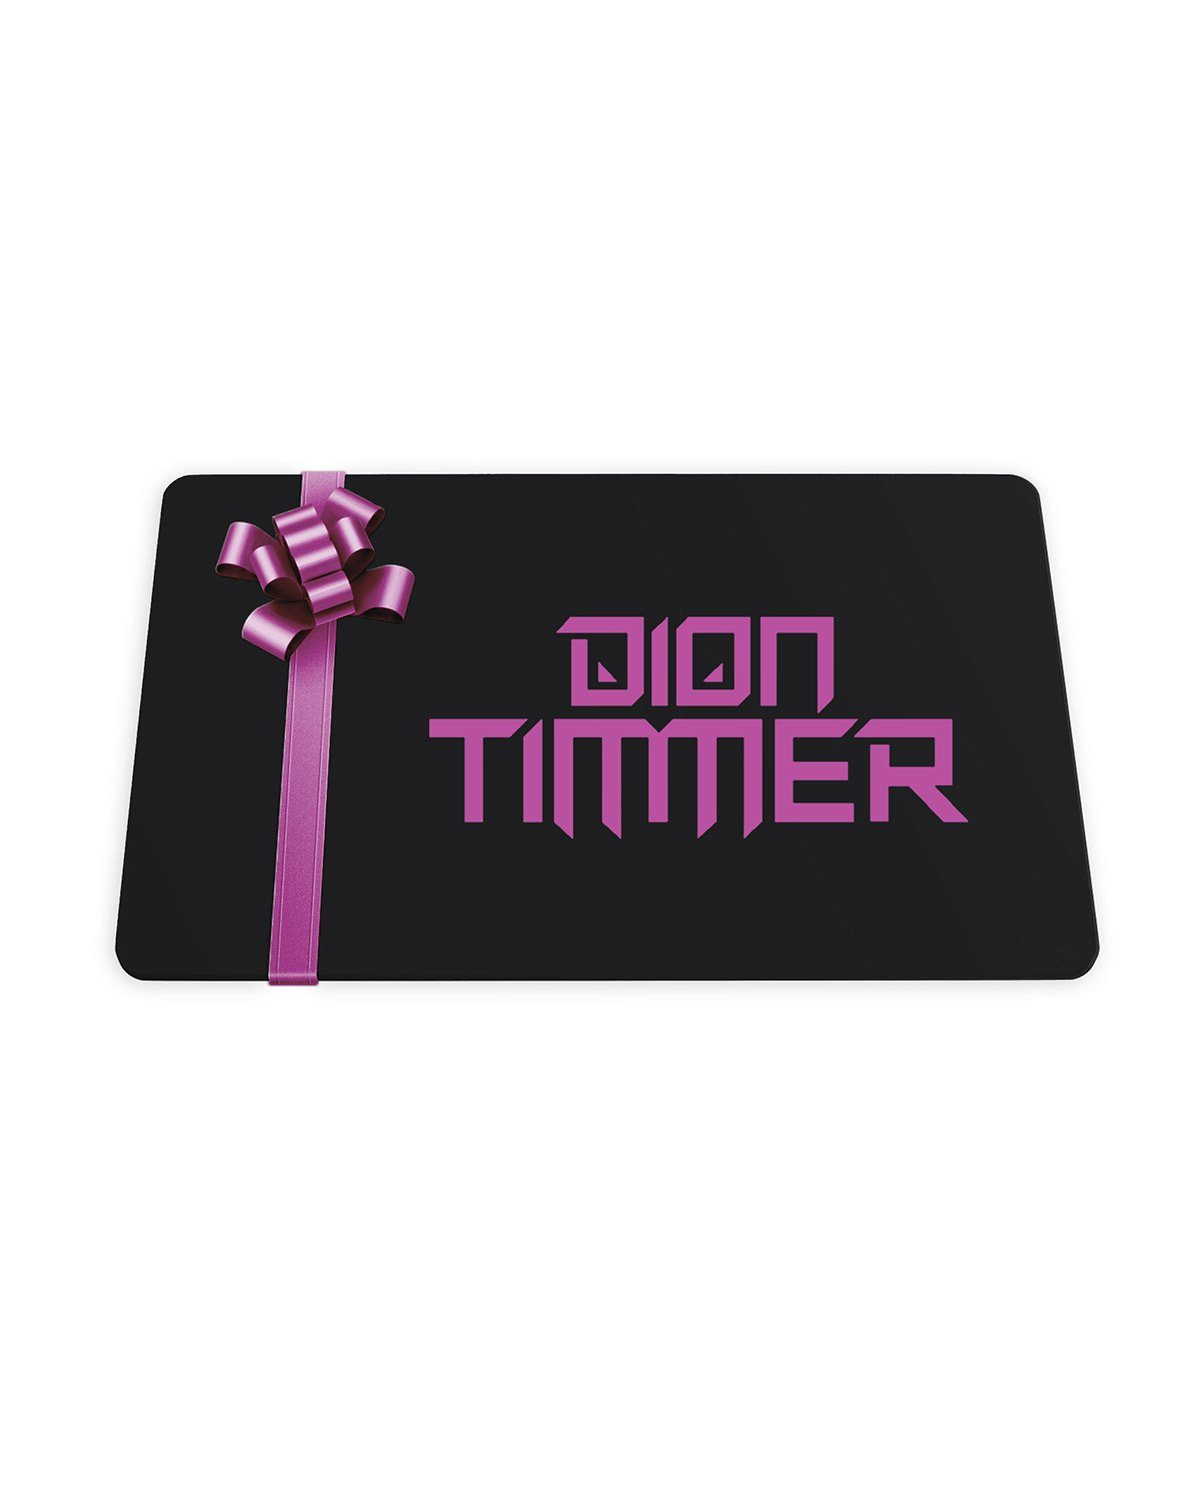 Dion Timmer Gift Card